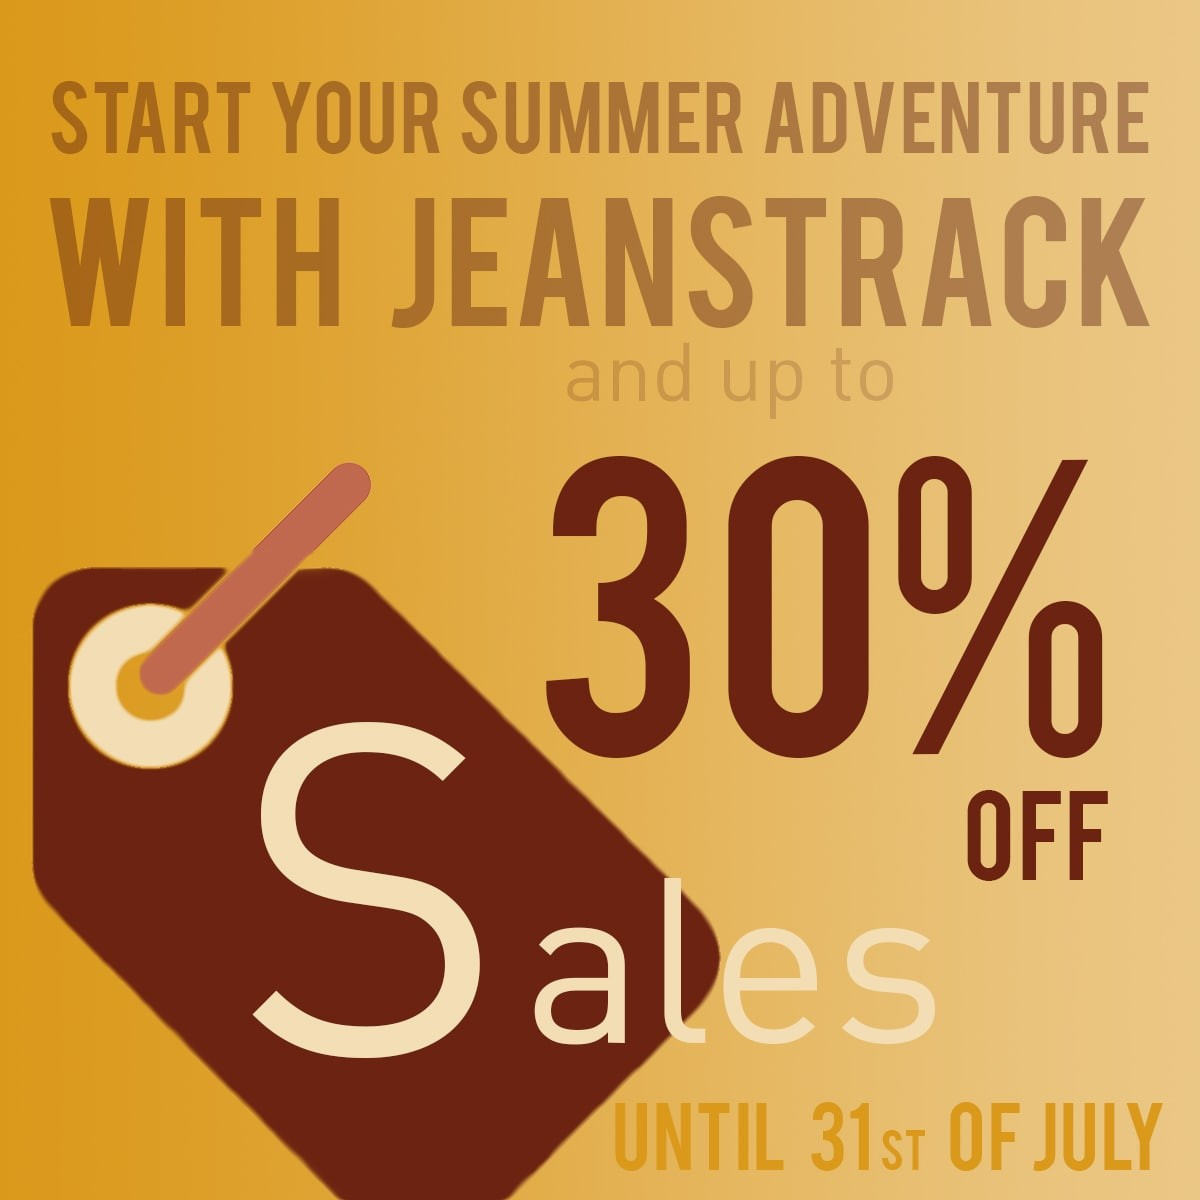 Sales in Jeanstrack